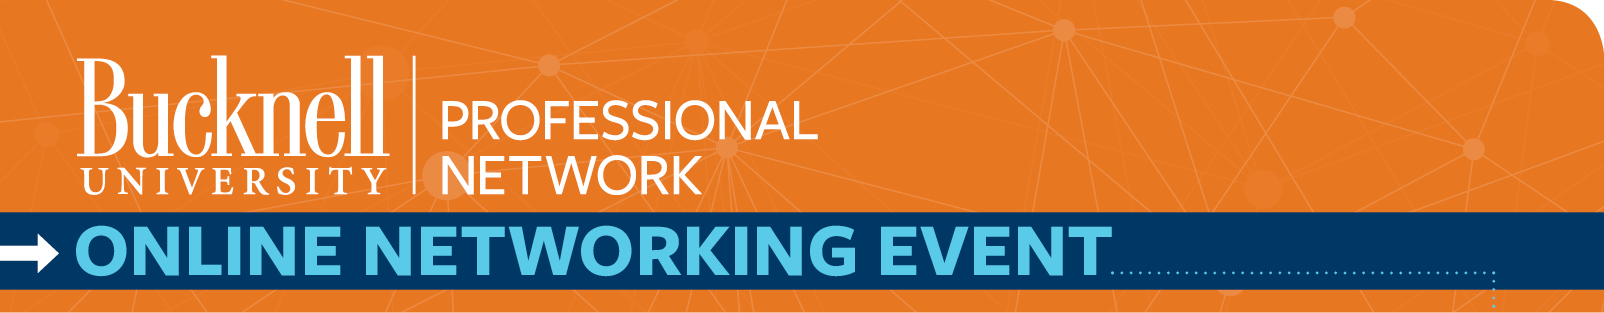 Bucknell February Online Networking